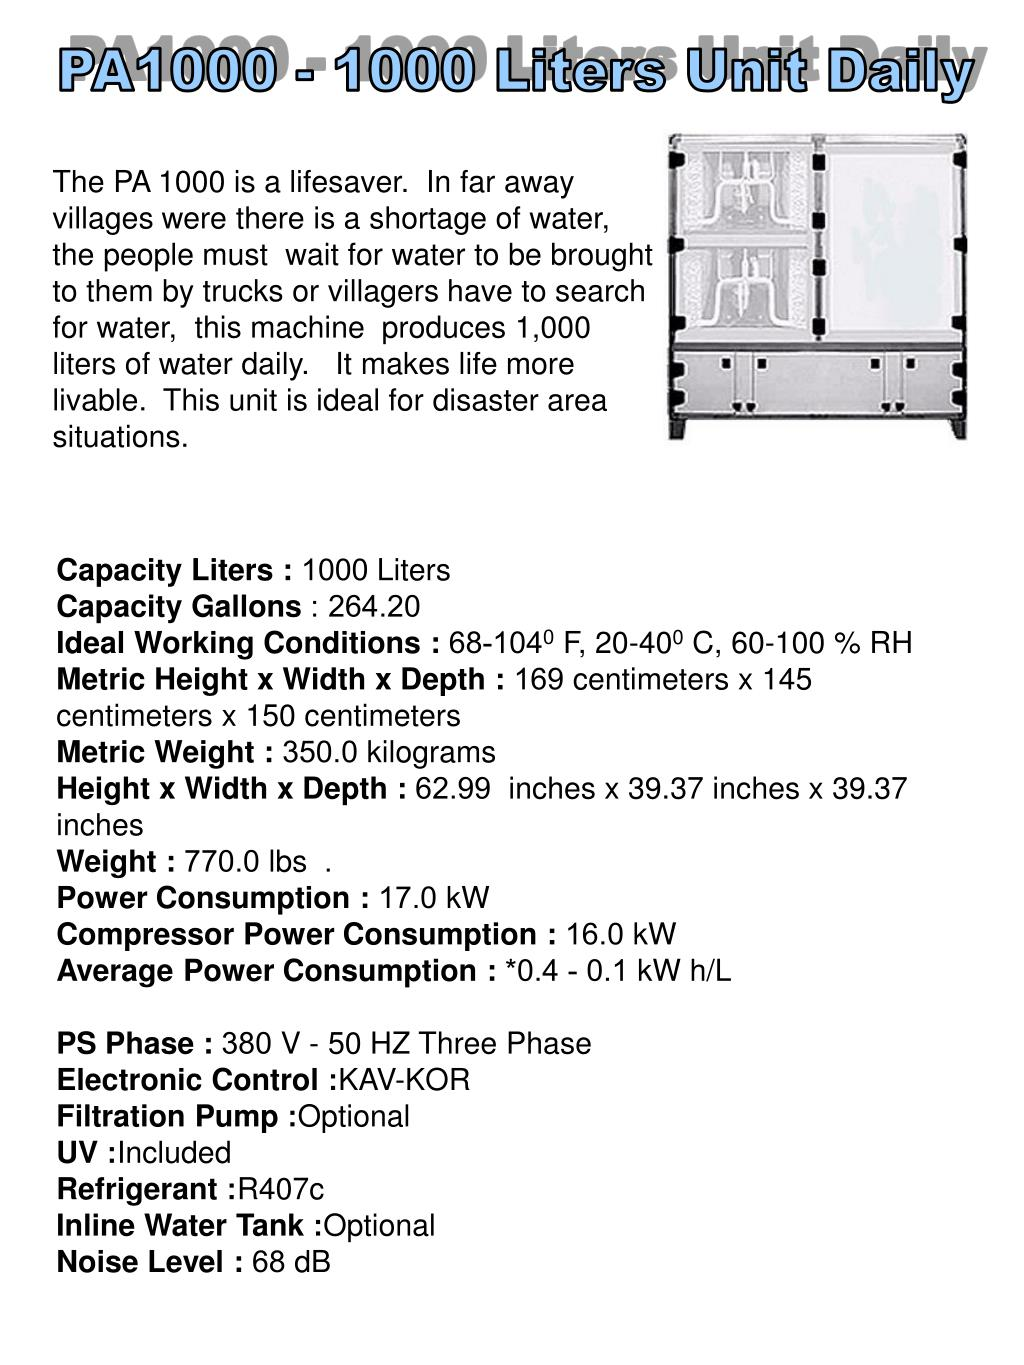 PA1000 - 1000 Liters Unit Daily